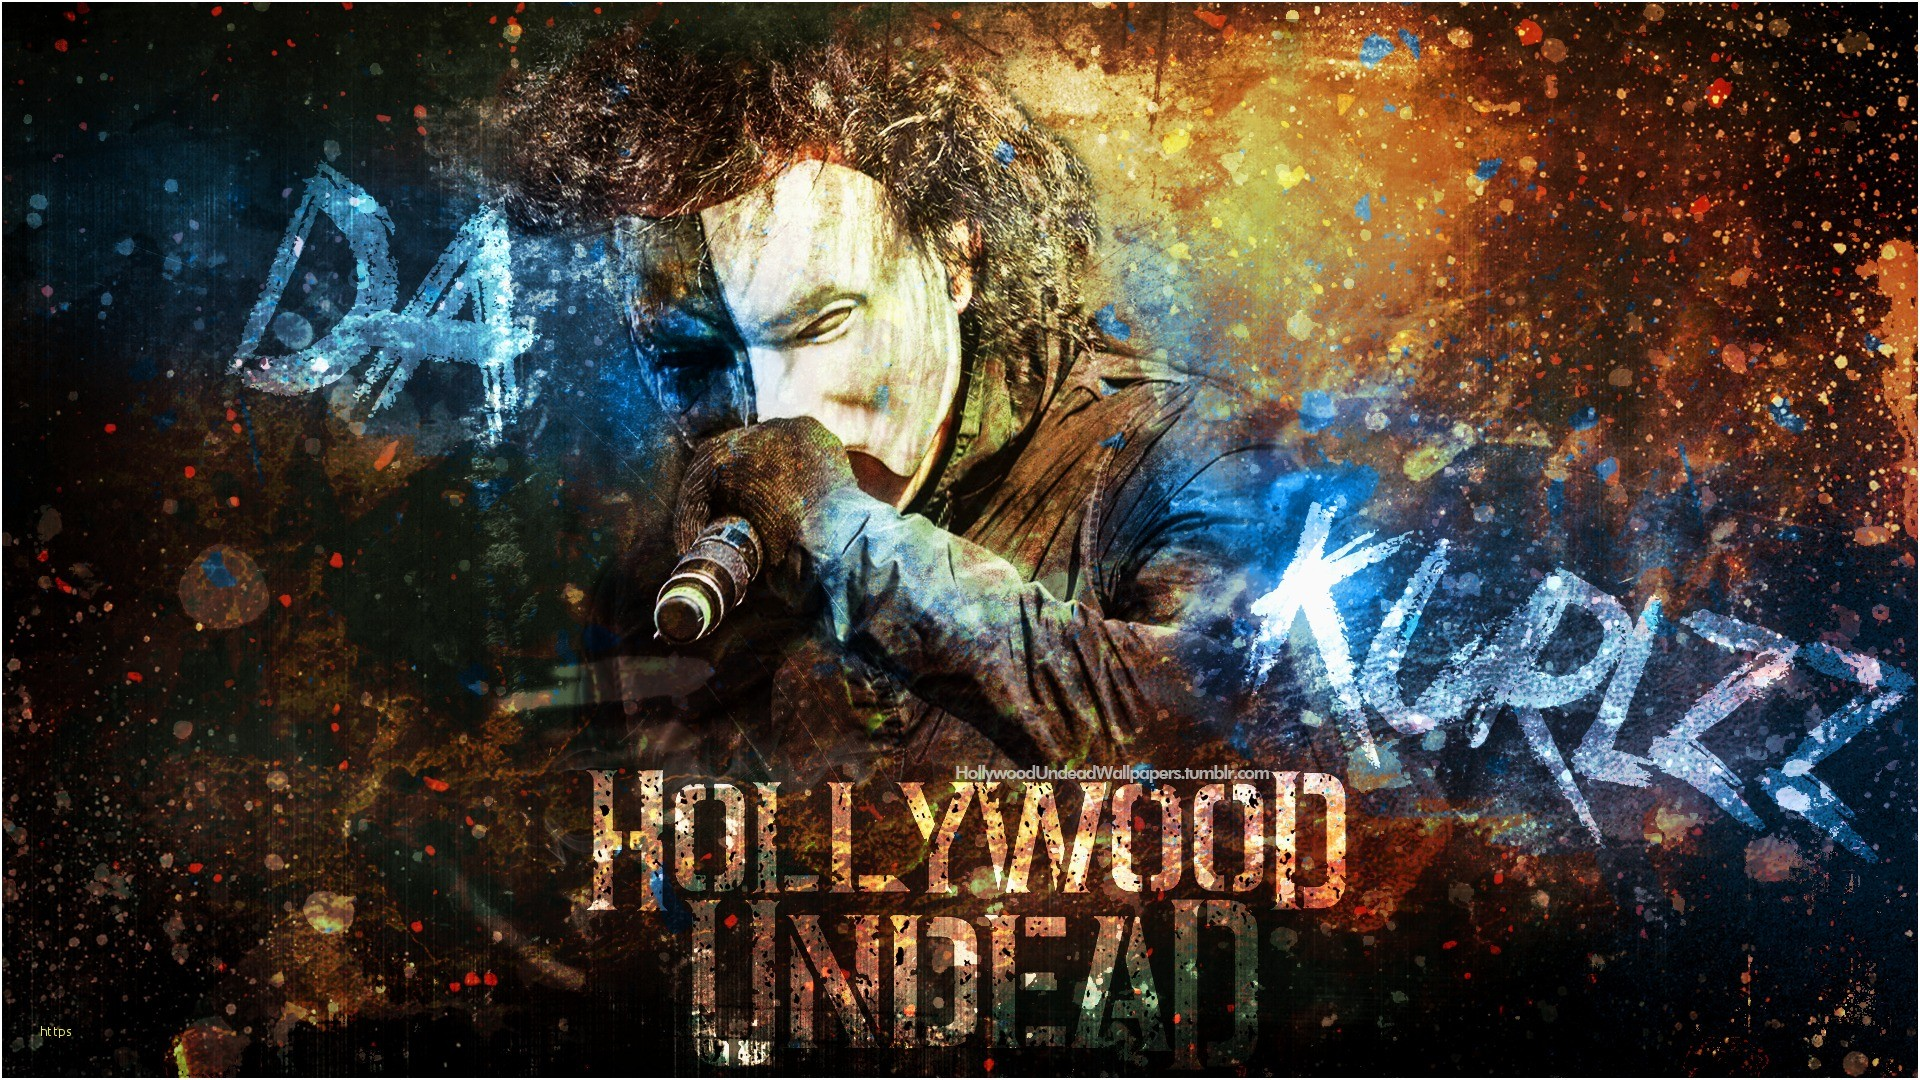 Res: 1920x1080, Hollywood Undead Wallpaper Lovely Hollywood Undead Da Kurlzz Wallpaper 2016  by Emirulug On